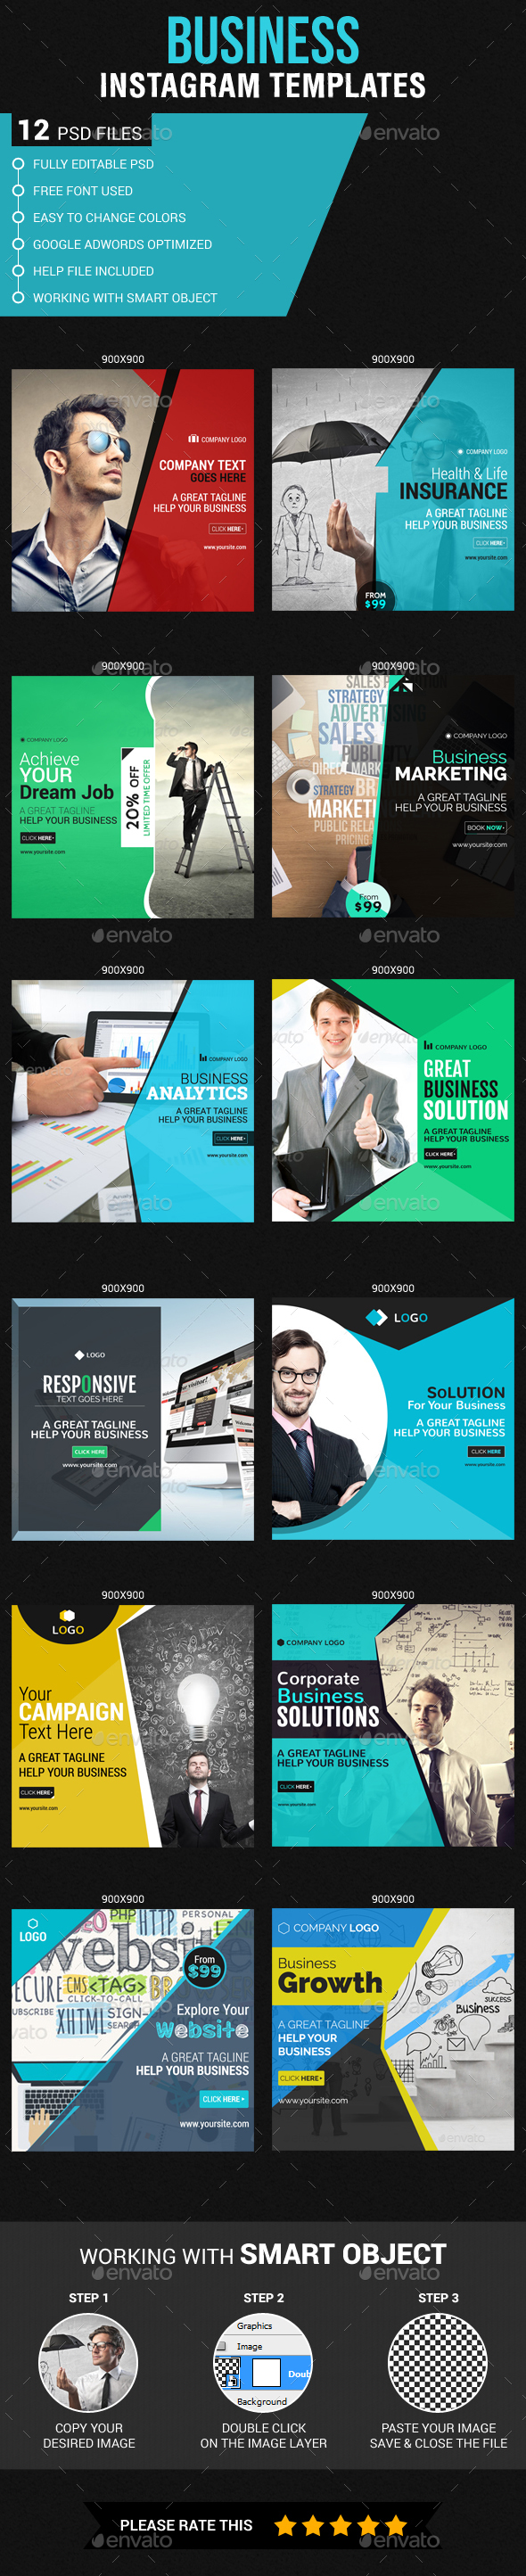 Corporate Business Instagram Banners - Banners & Ads Web Elements